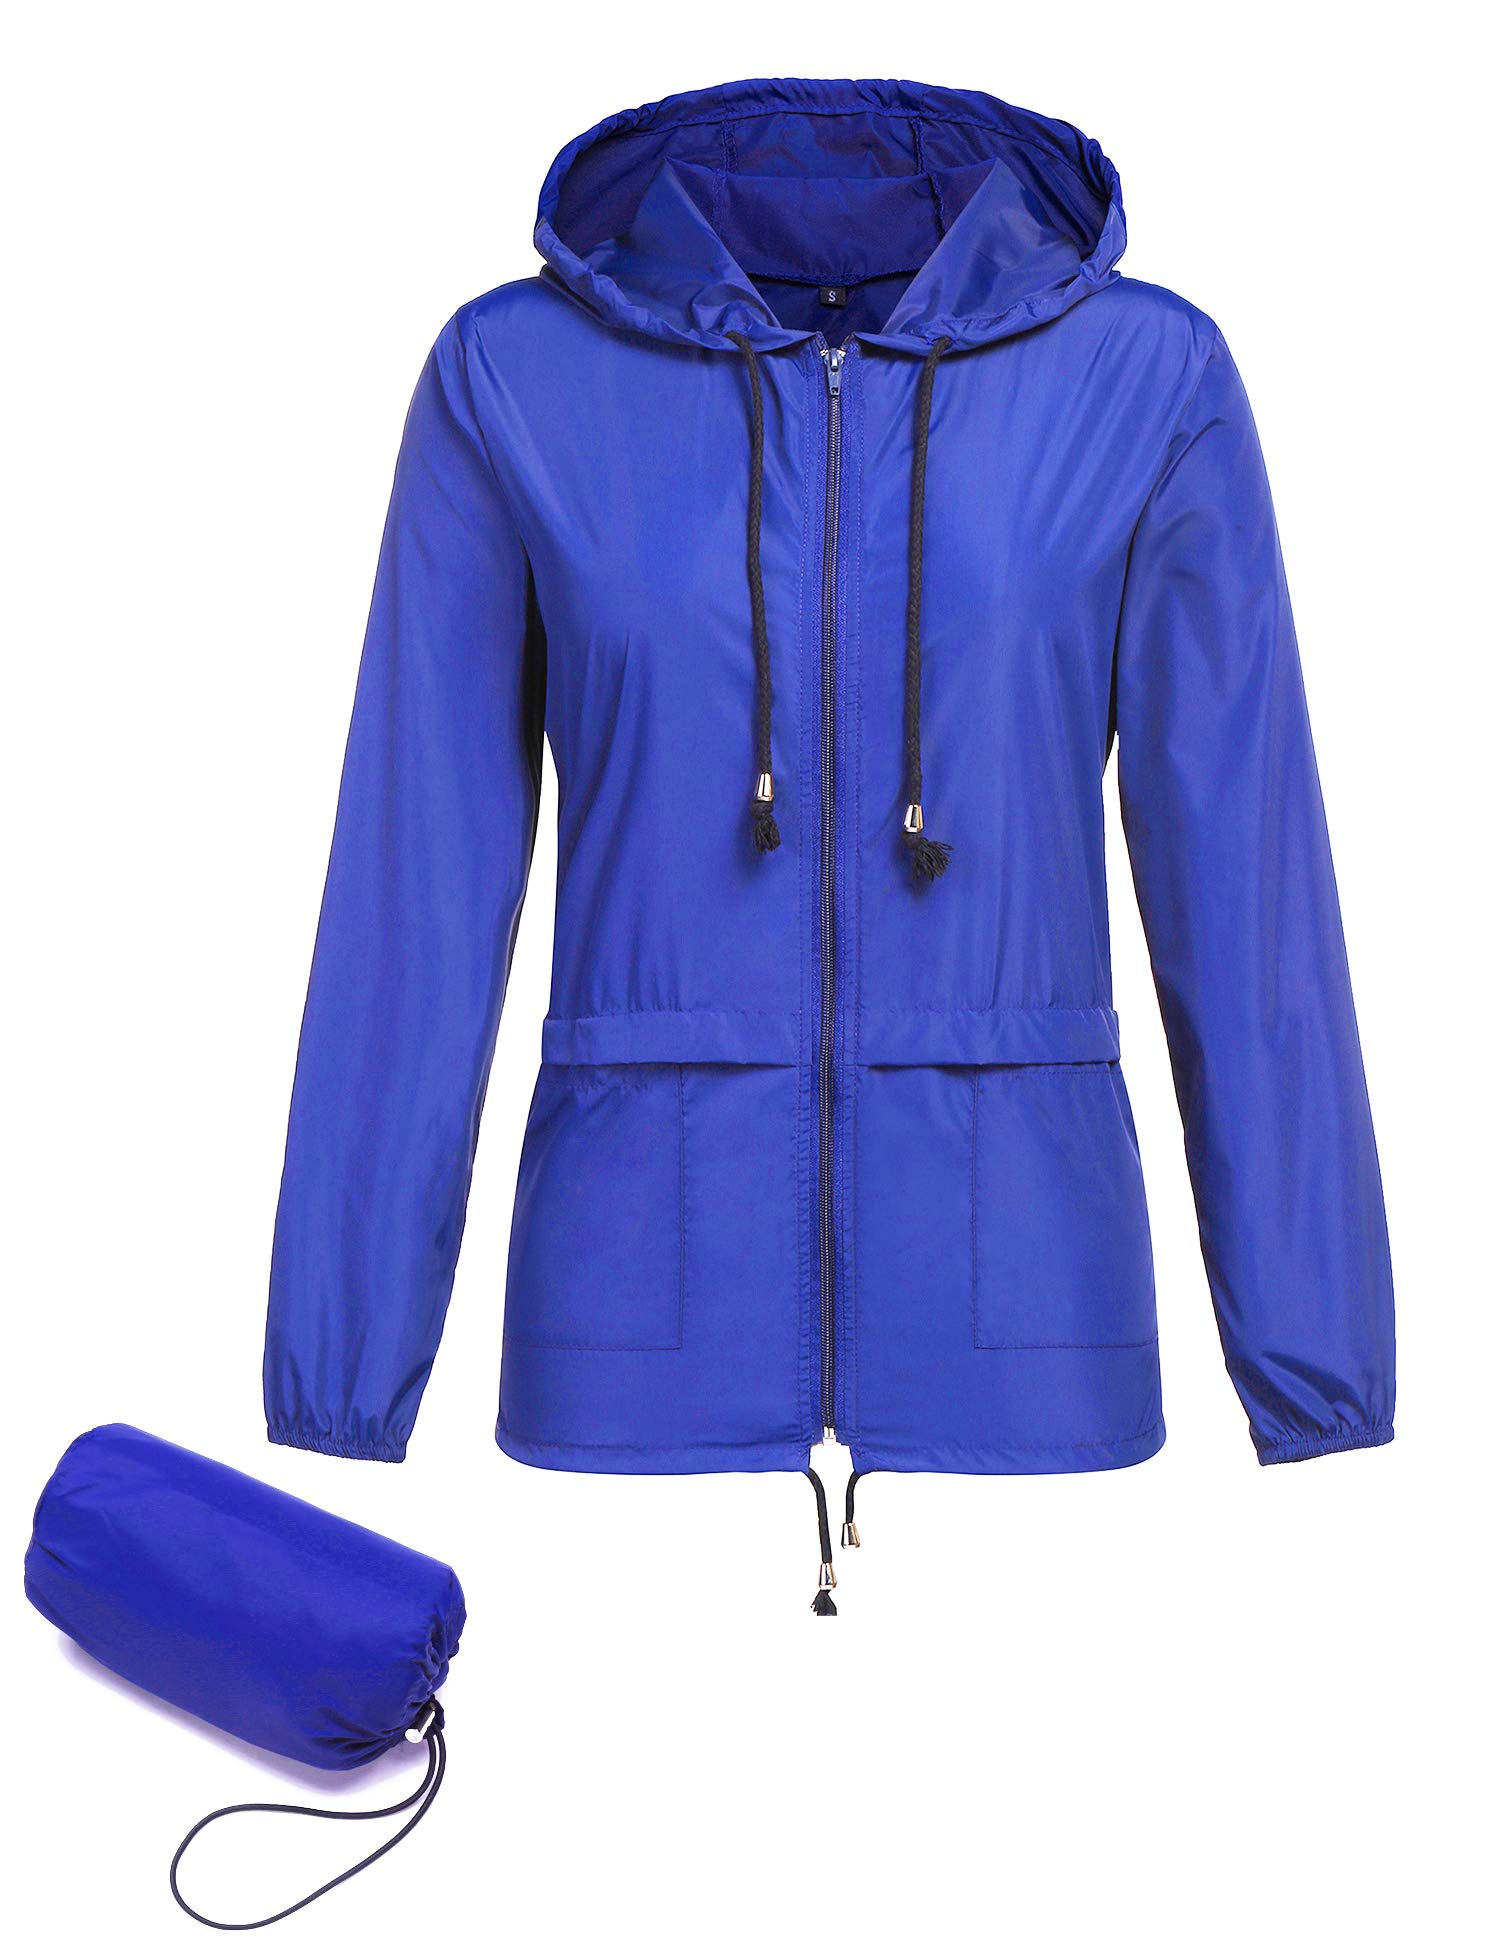 ZHENWEI Shell Raincoats Women Zip Up Mountain Camping Travel Jogging Outdoor Acvities Blue M